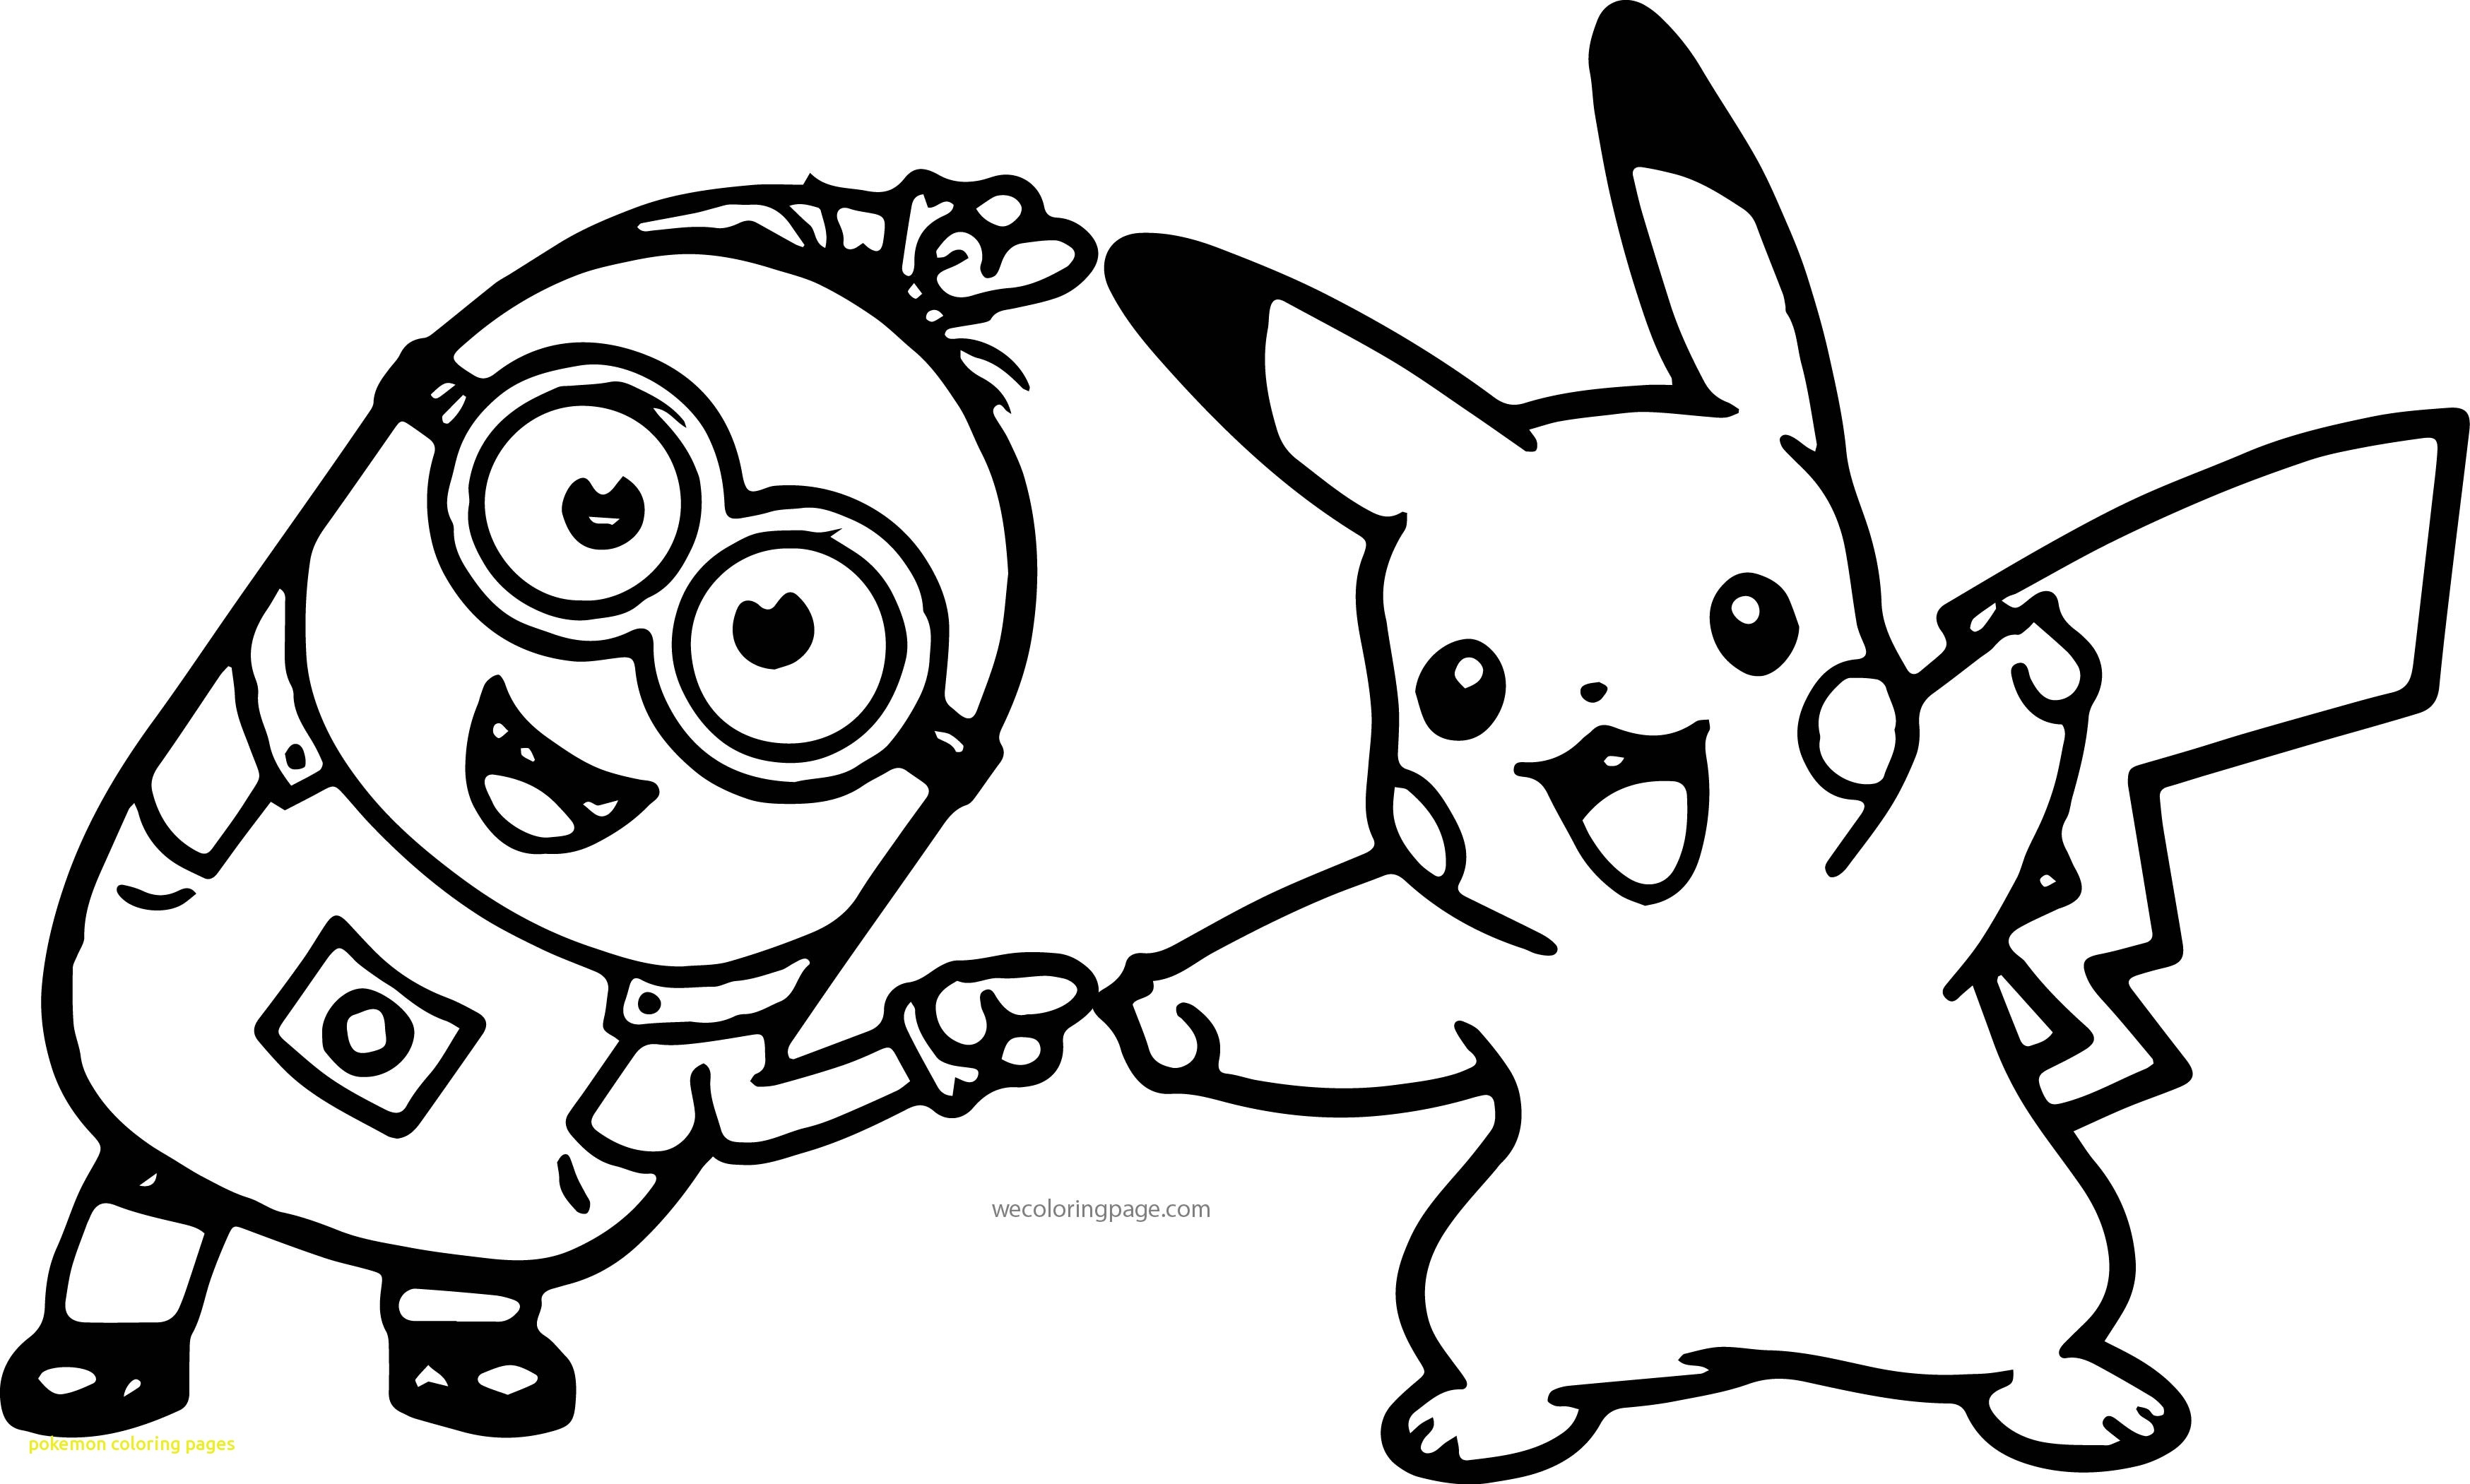 3496x2101 Pokemon Pikachu Coloring Pages Gallery Free Coloring Pages Download